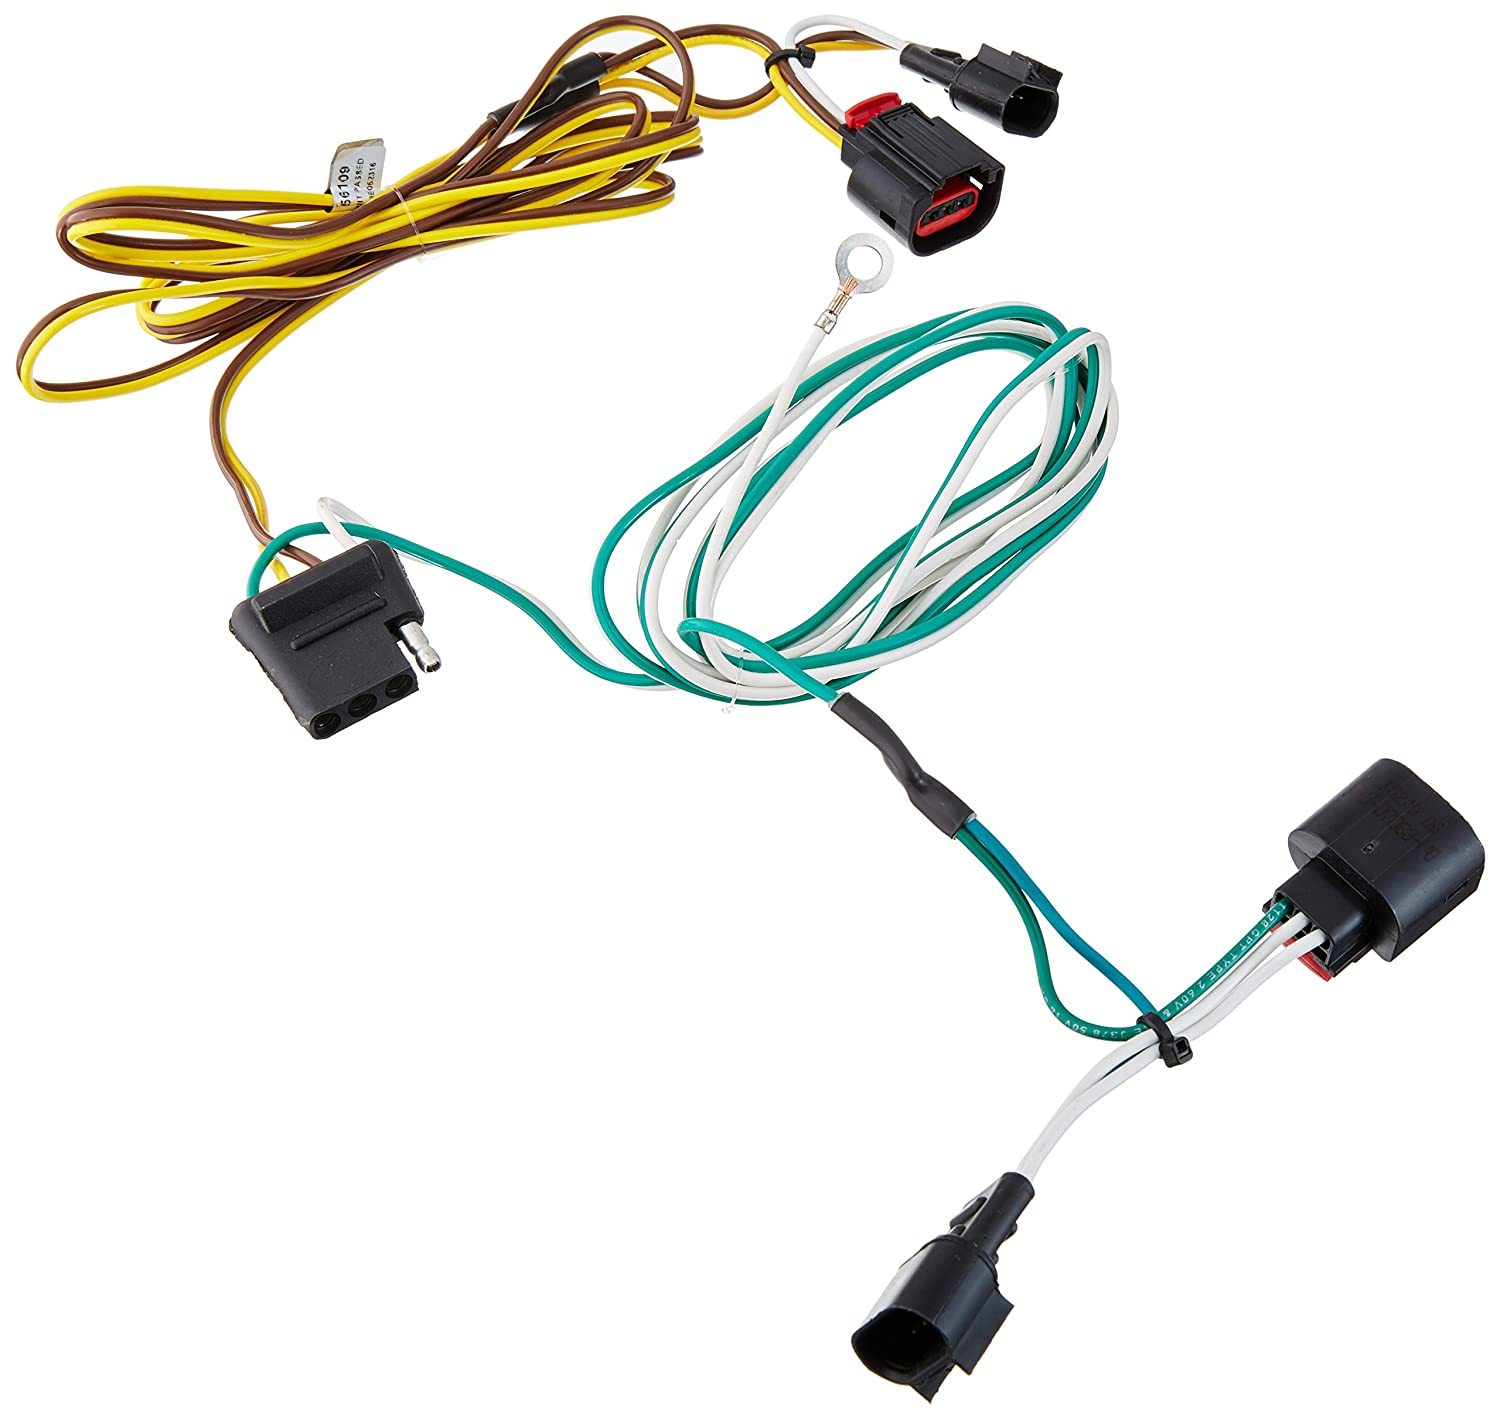 Amazon.com: CURT 56109 Custom Vehicle Trailer Wiring Harness for Towing:  Automotive